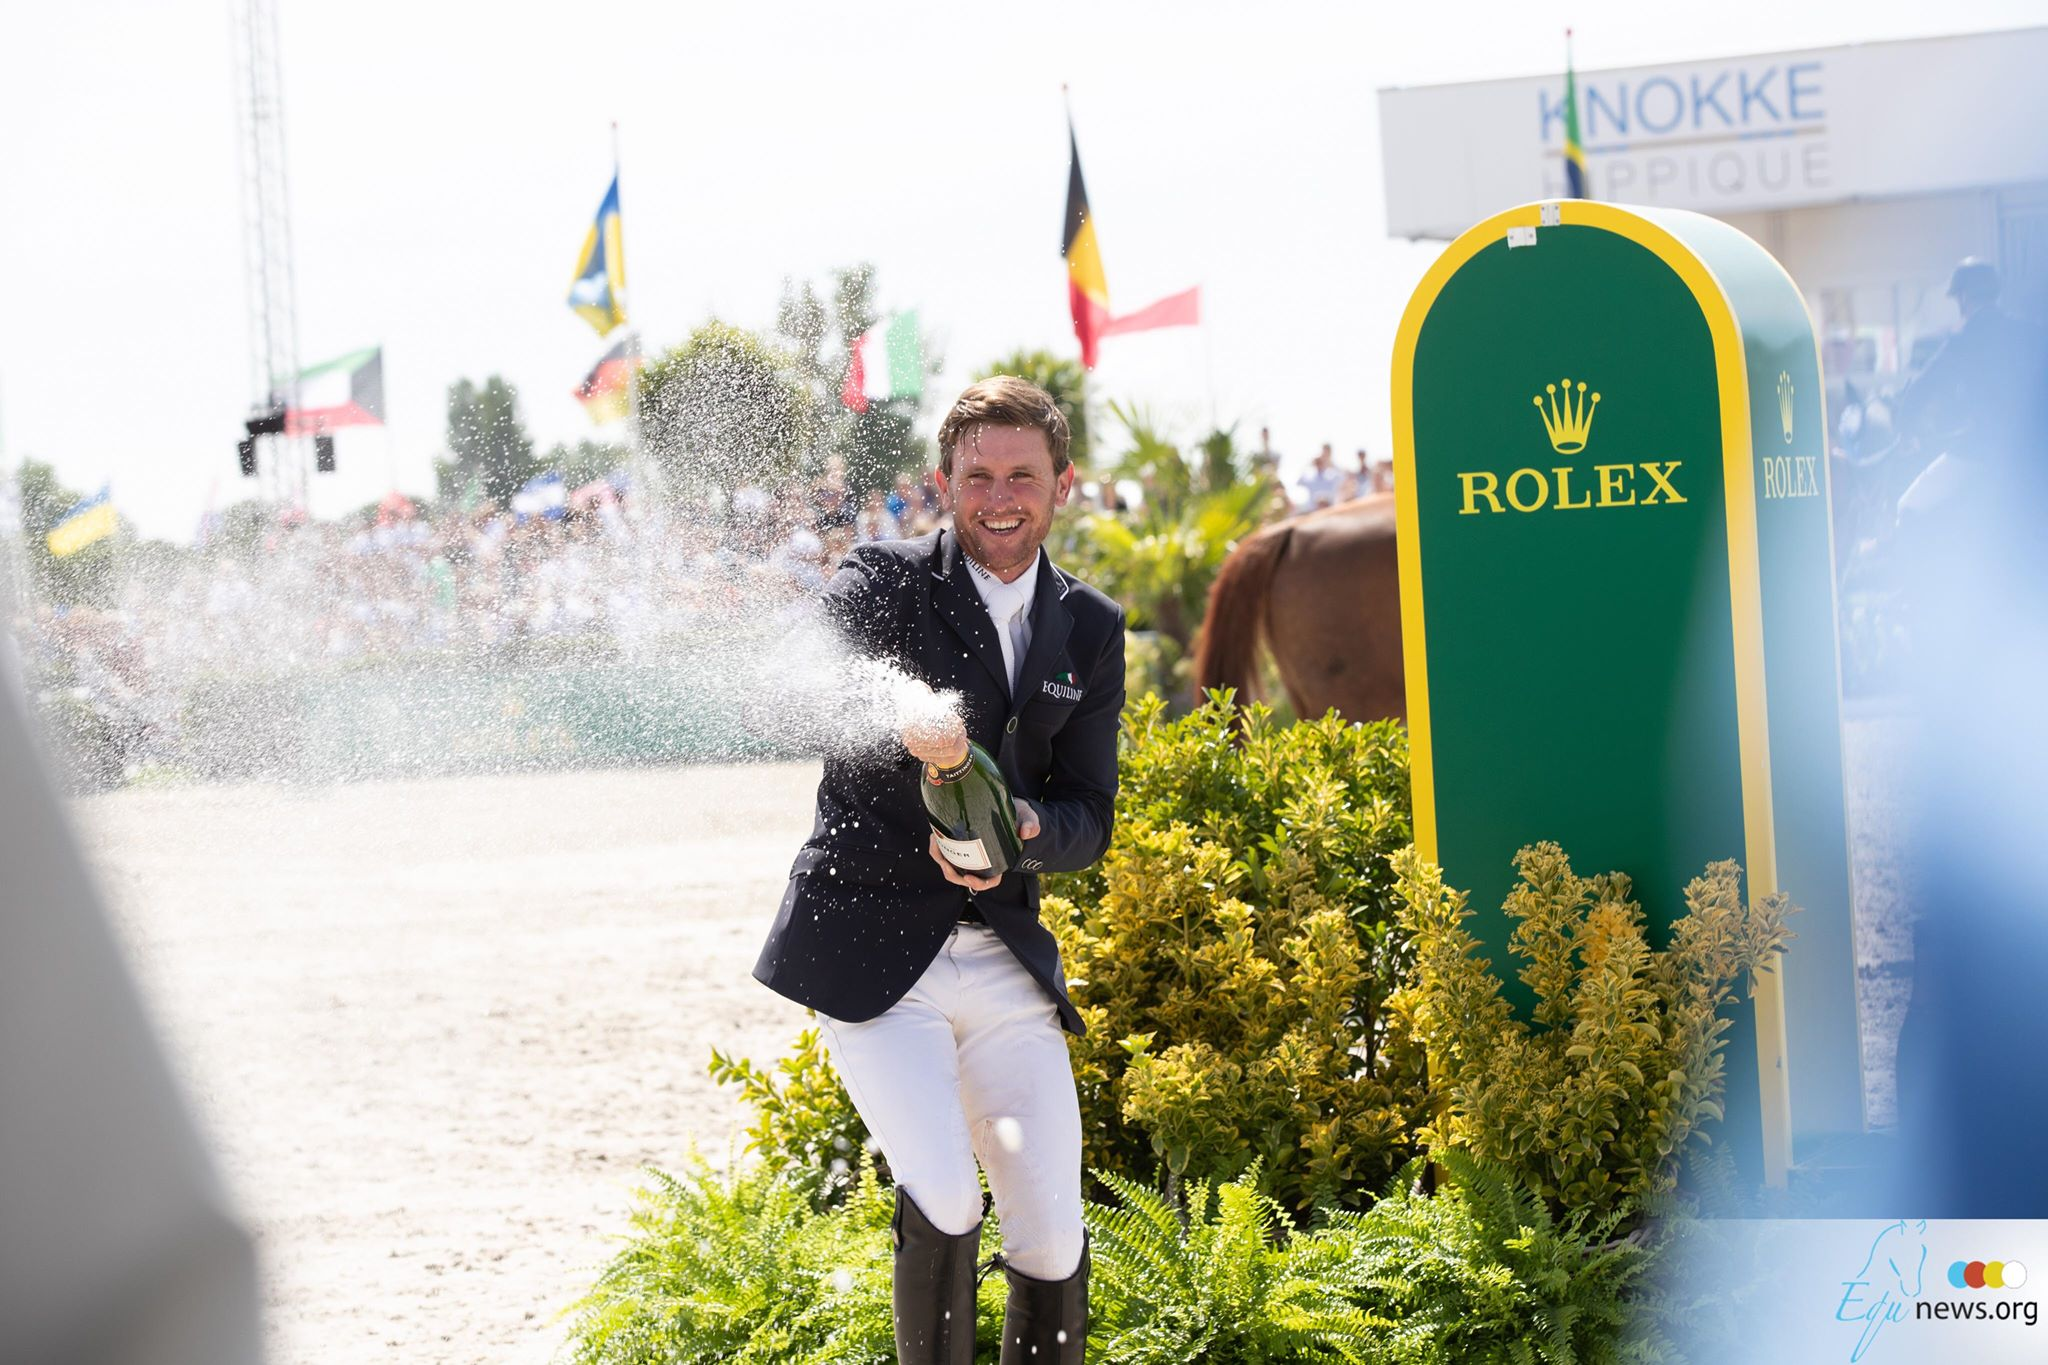 Thrilling showdown between Simone Blum and Darragh Kenny in Rolex Grand Prix Knokke